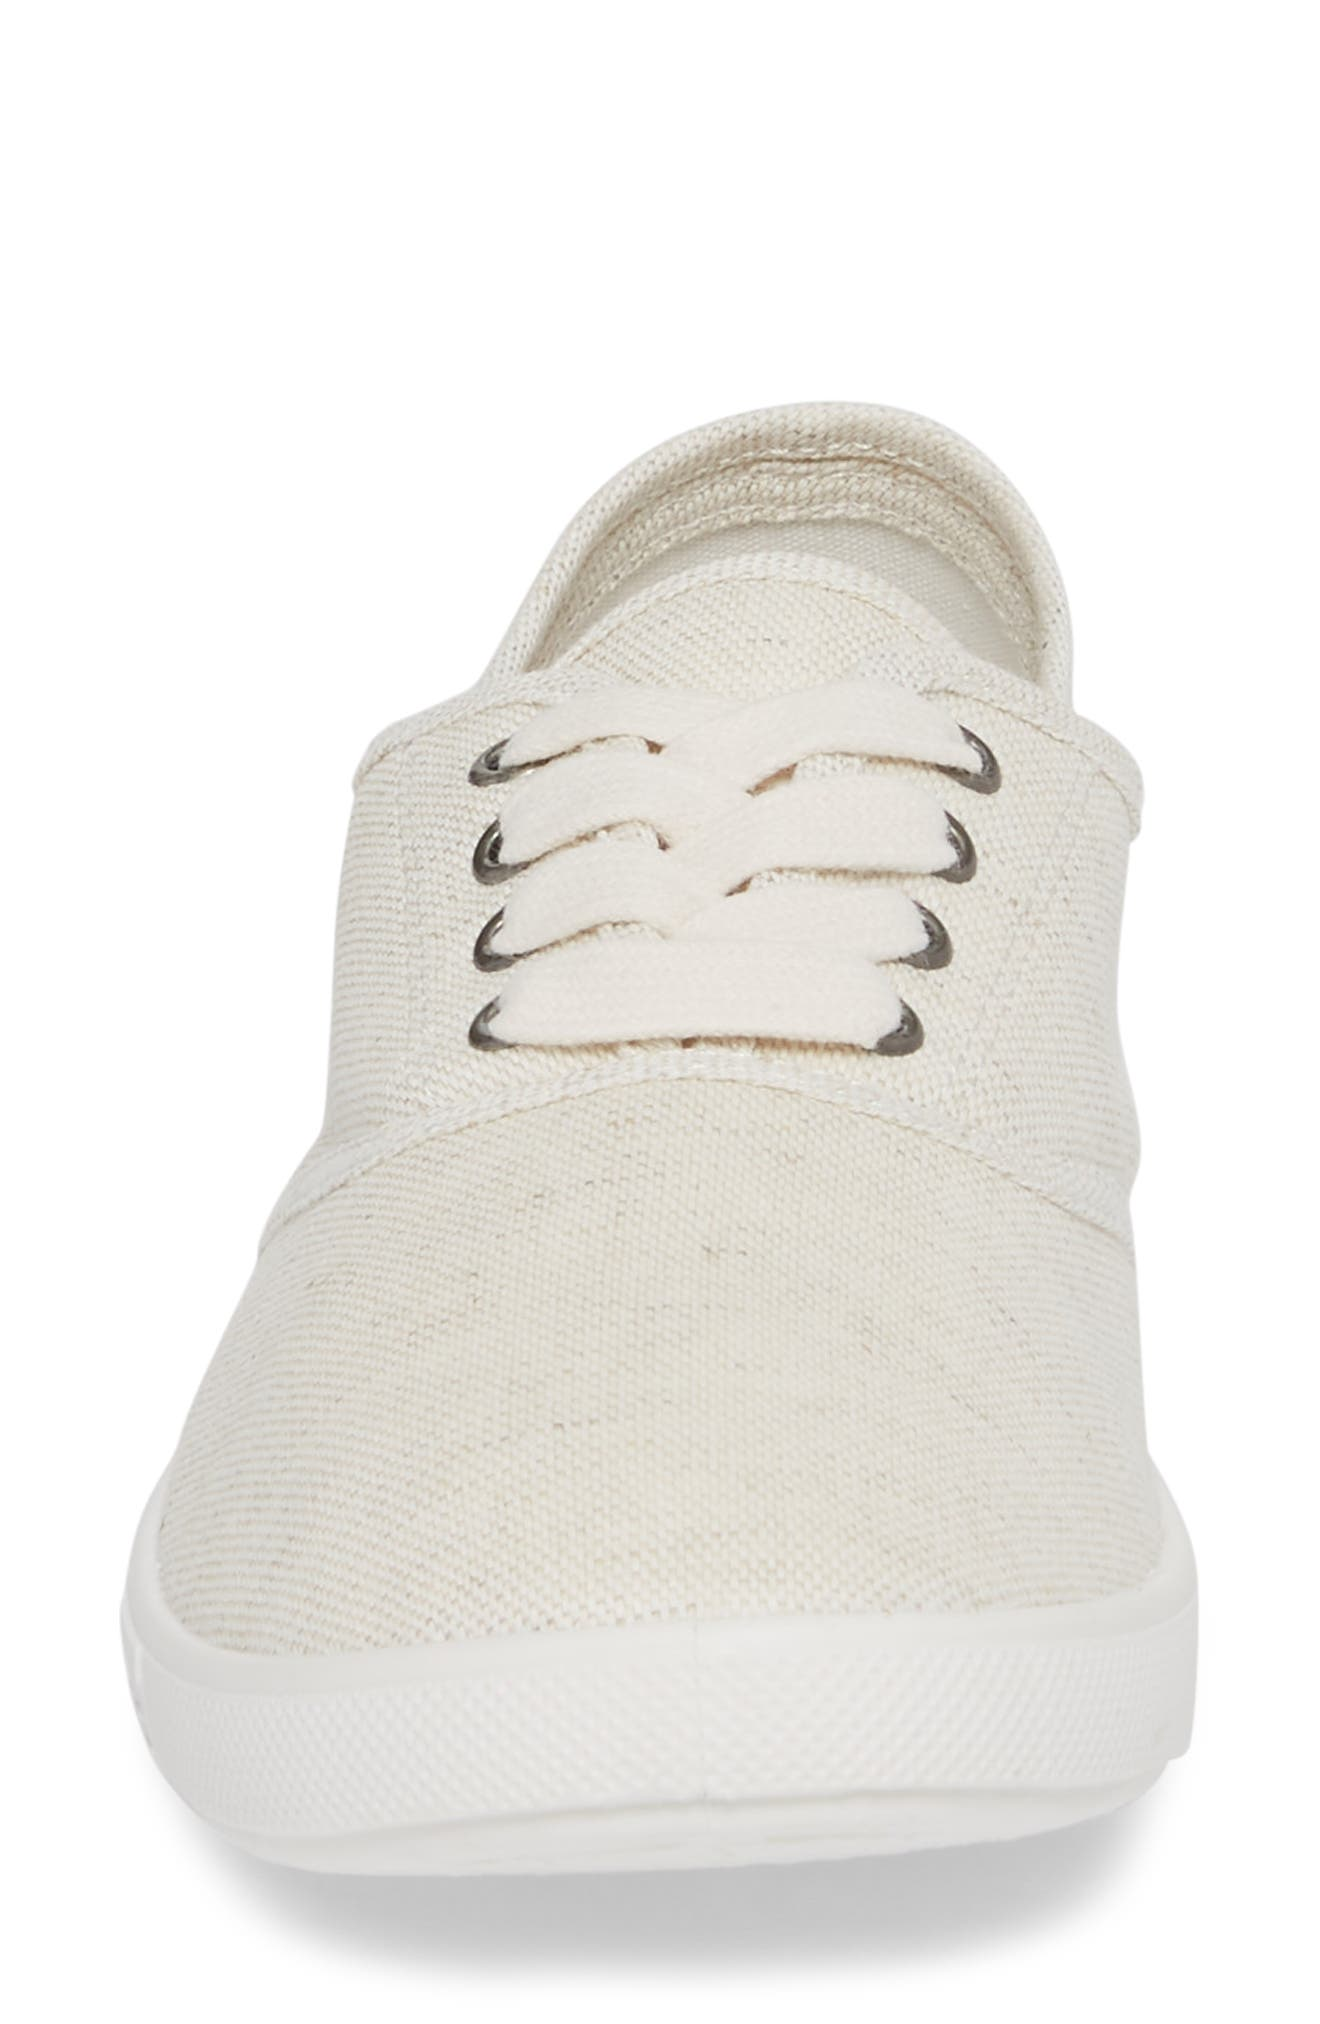 Addy Sneaker,                             Alternate thumbnail 12, color,